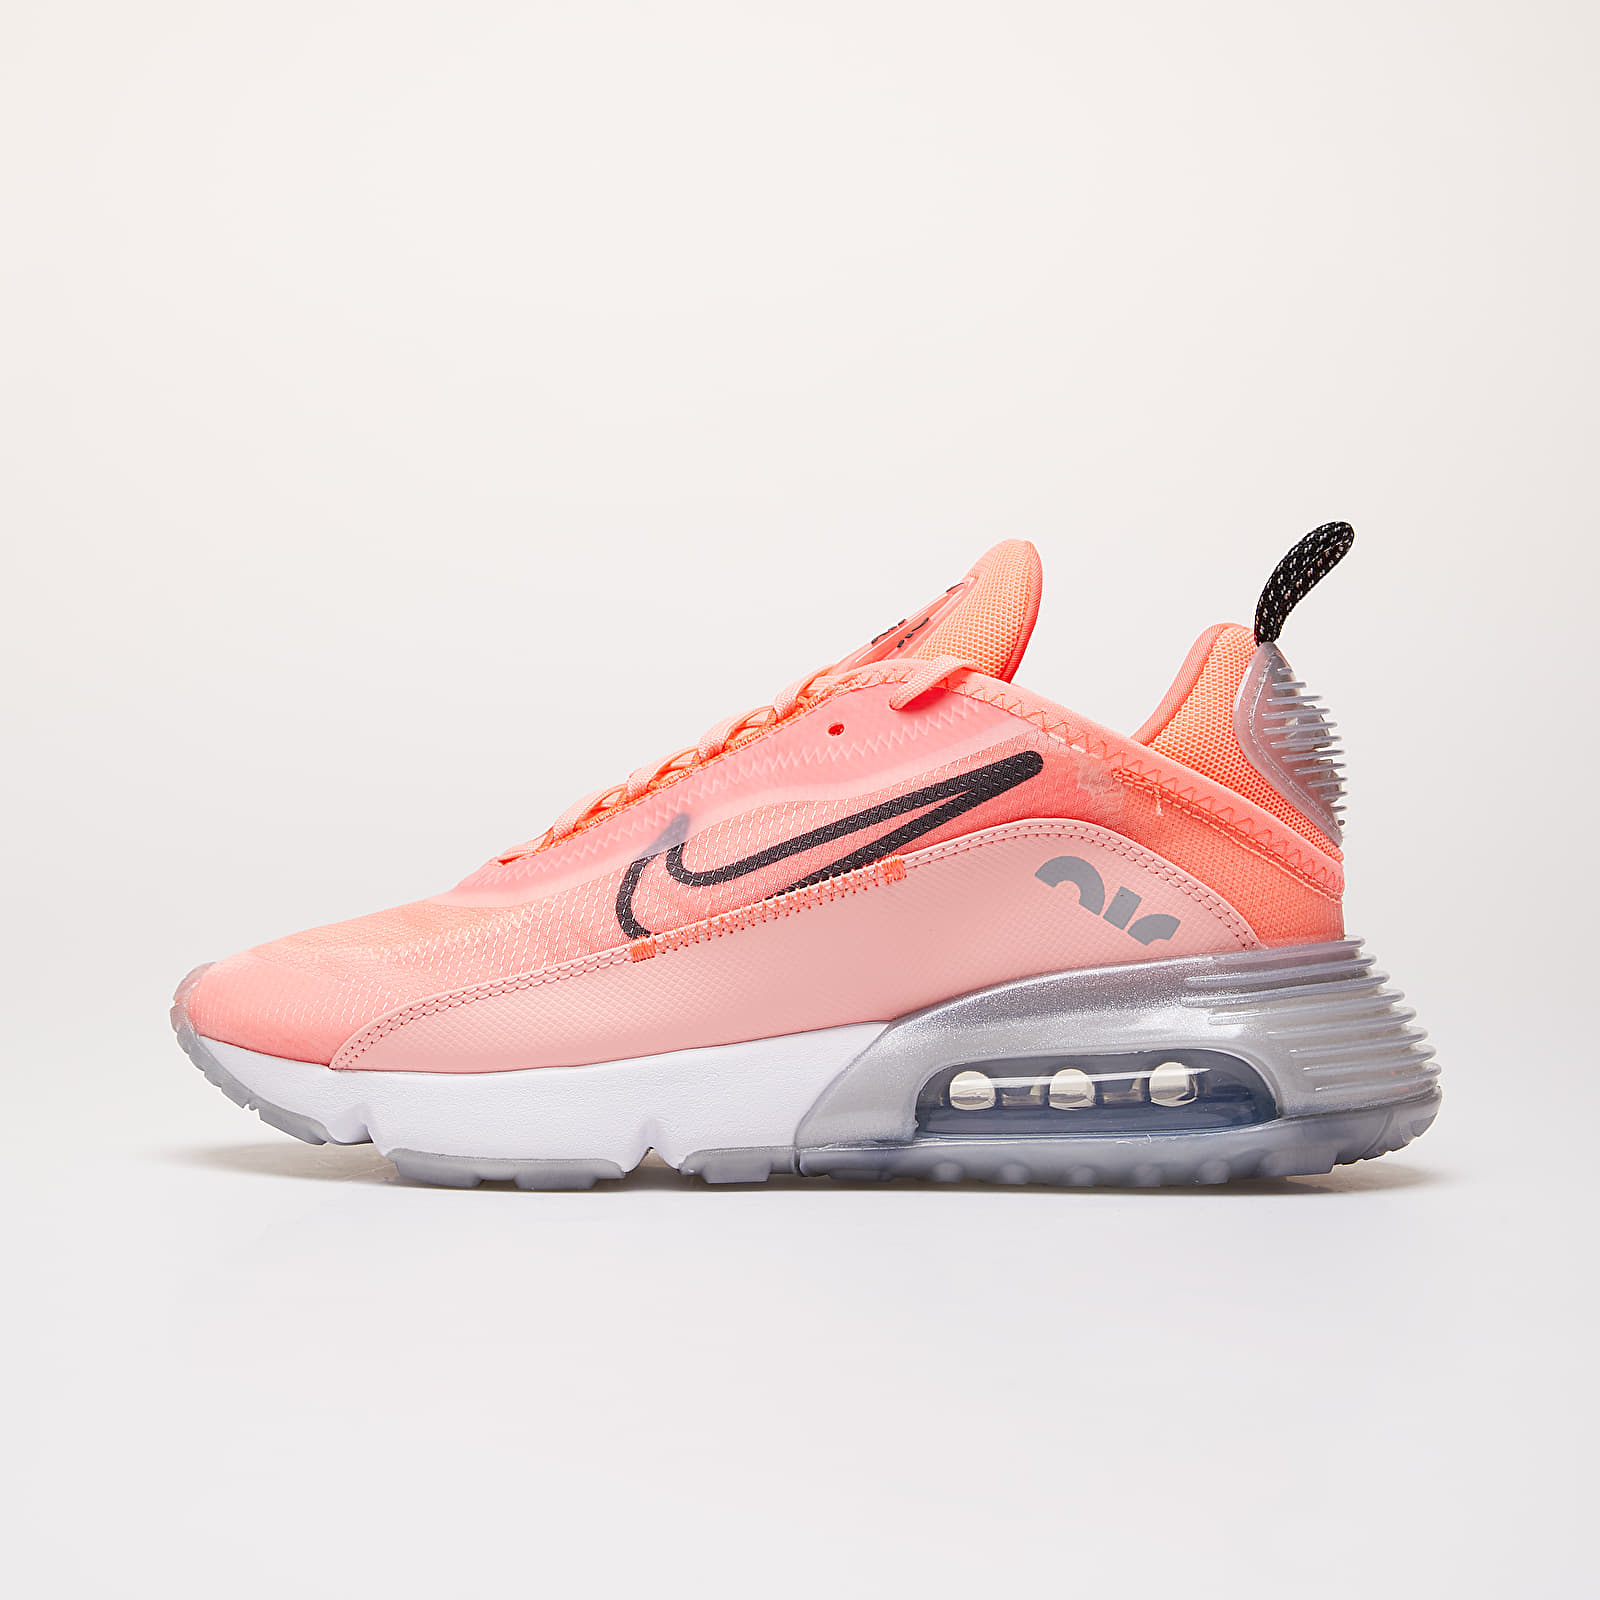 Chaussures et baskets femme Nike W Air Max 2090 Lava Glow/ Black-Flash Crimson